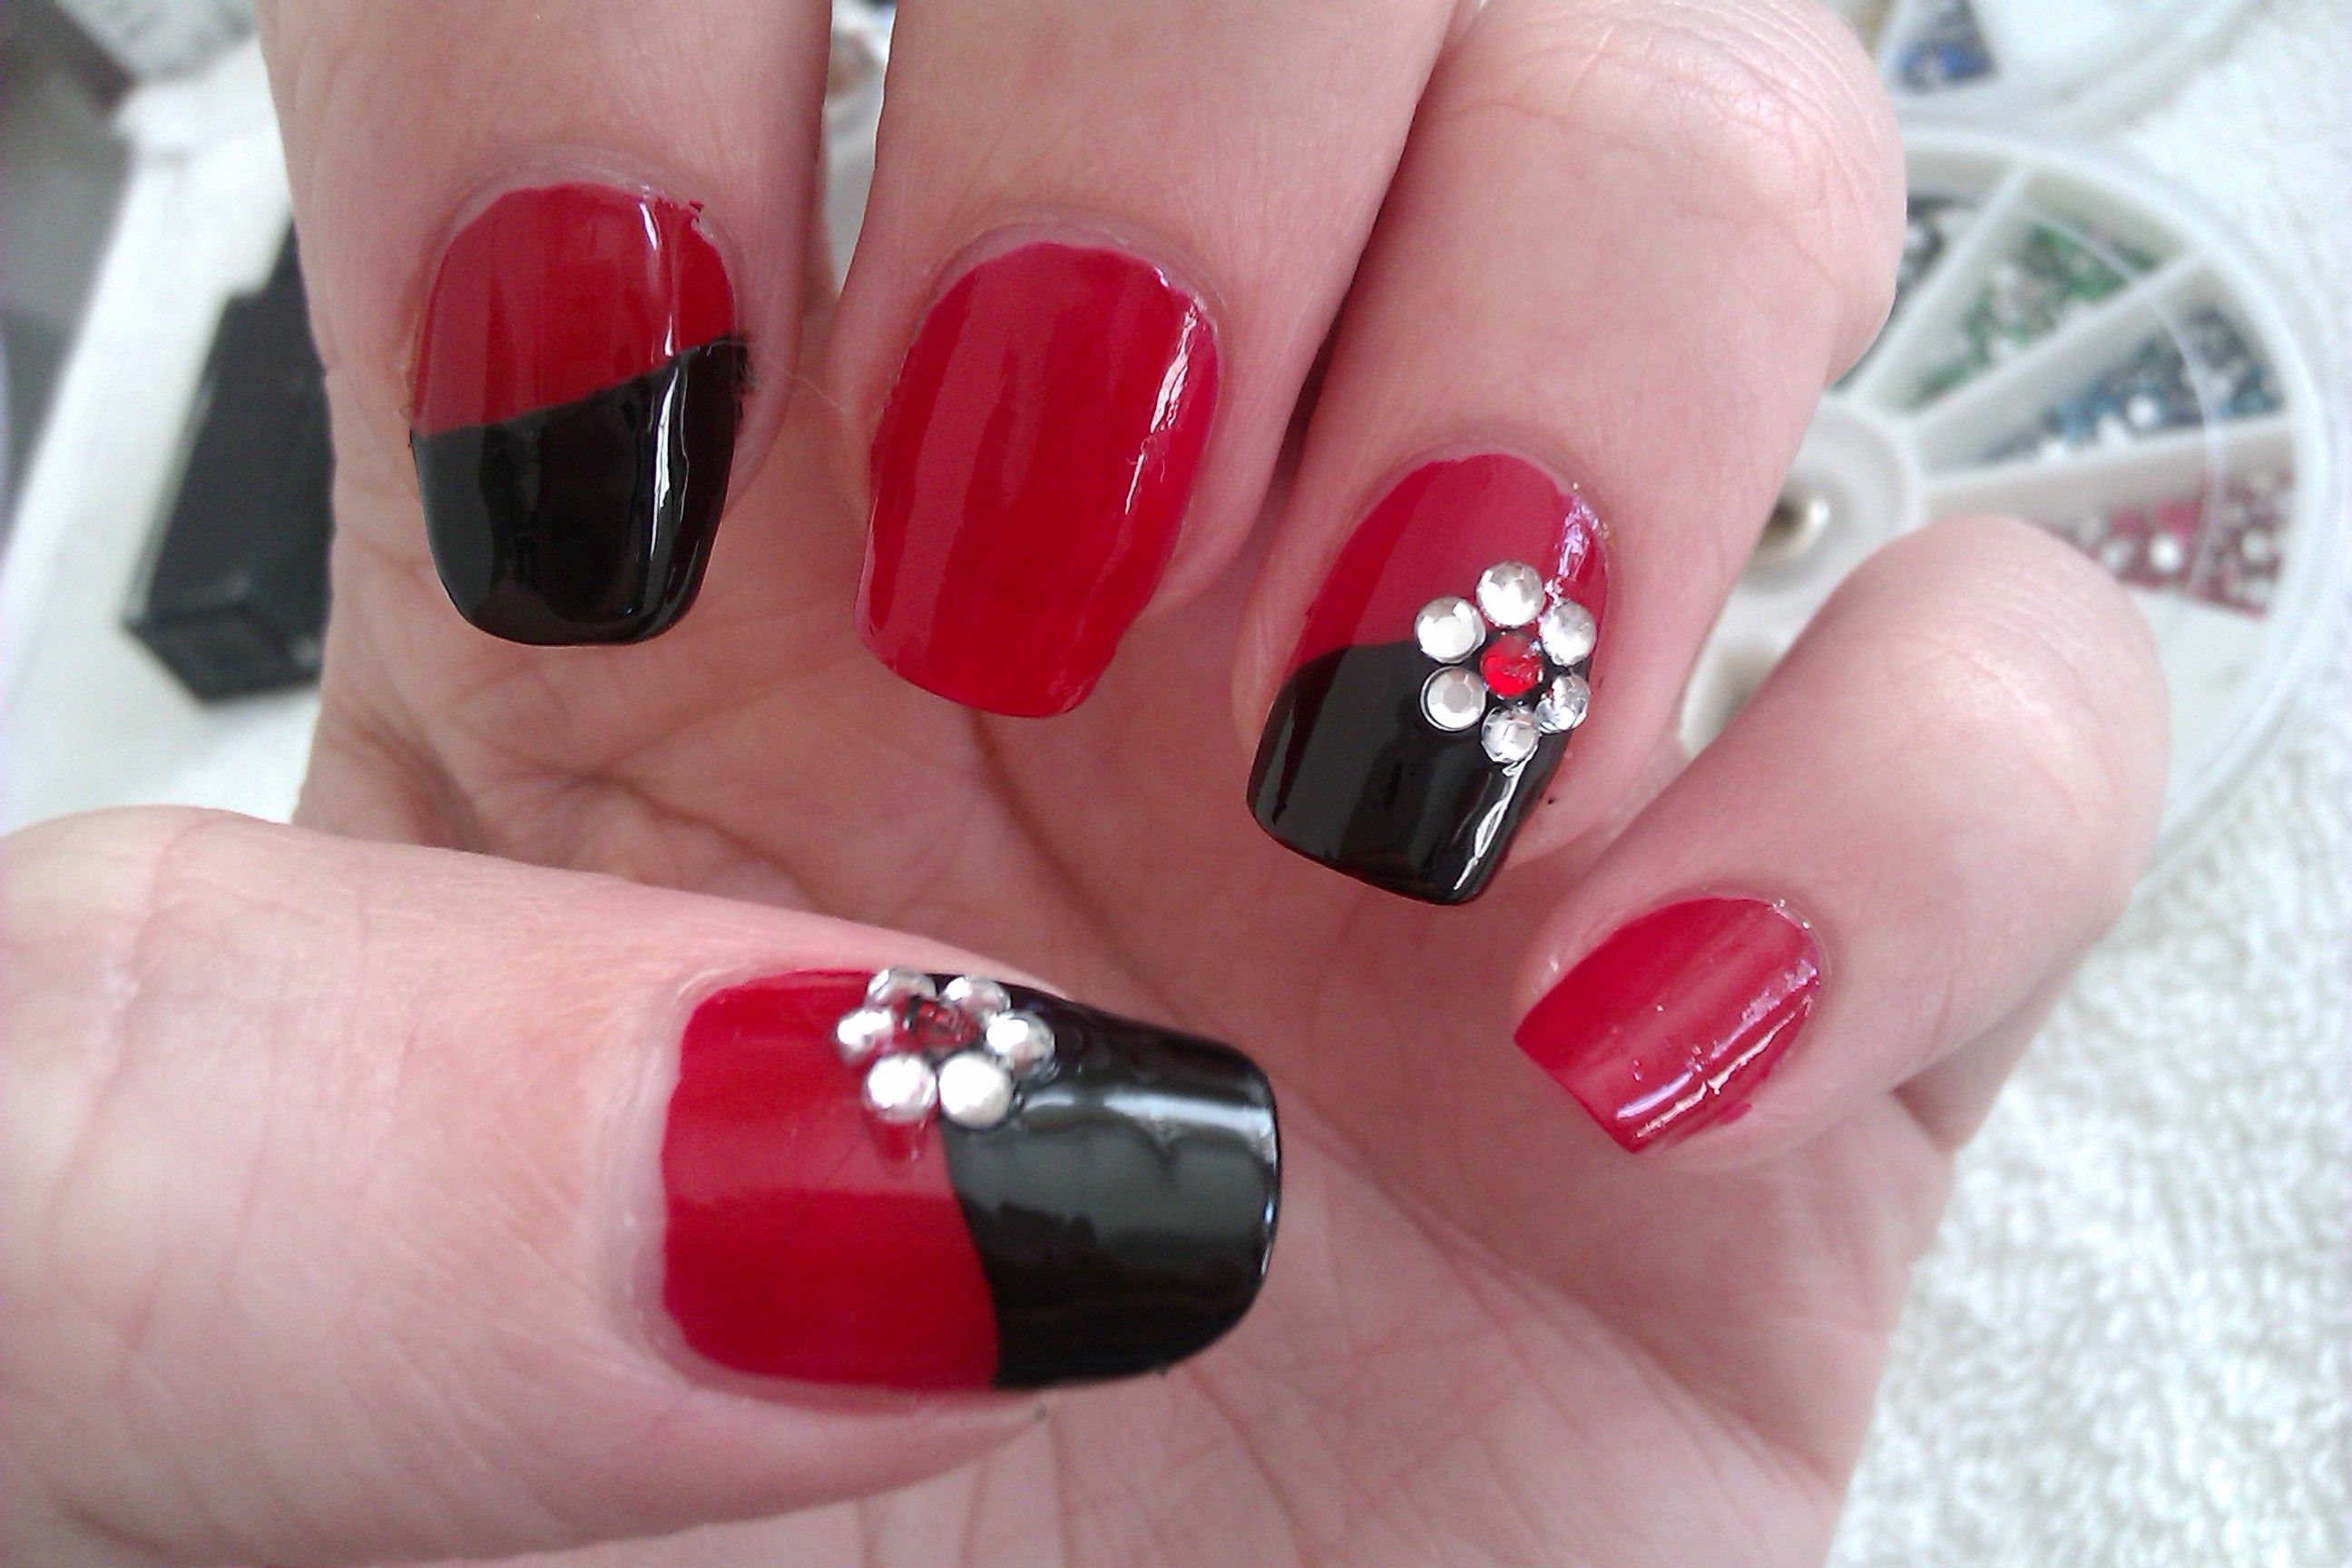 Cute nail designs easy do yourself google search nail art cute nail designs easy do yourself google search solutioingenieria Image collections